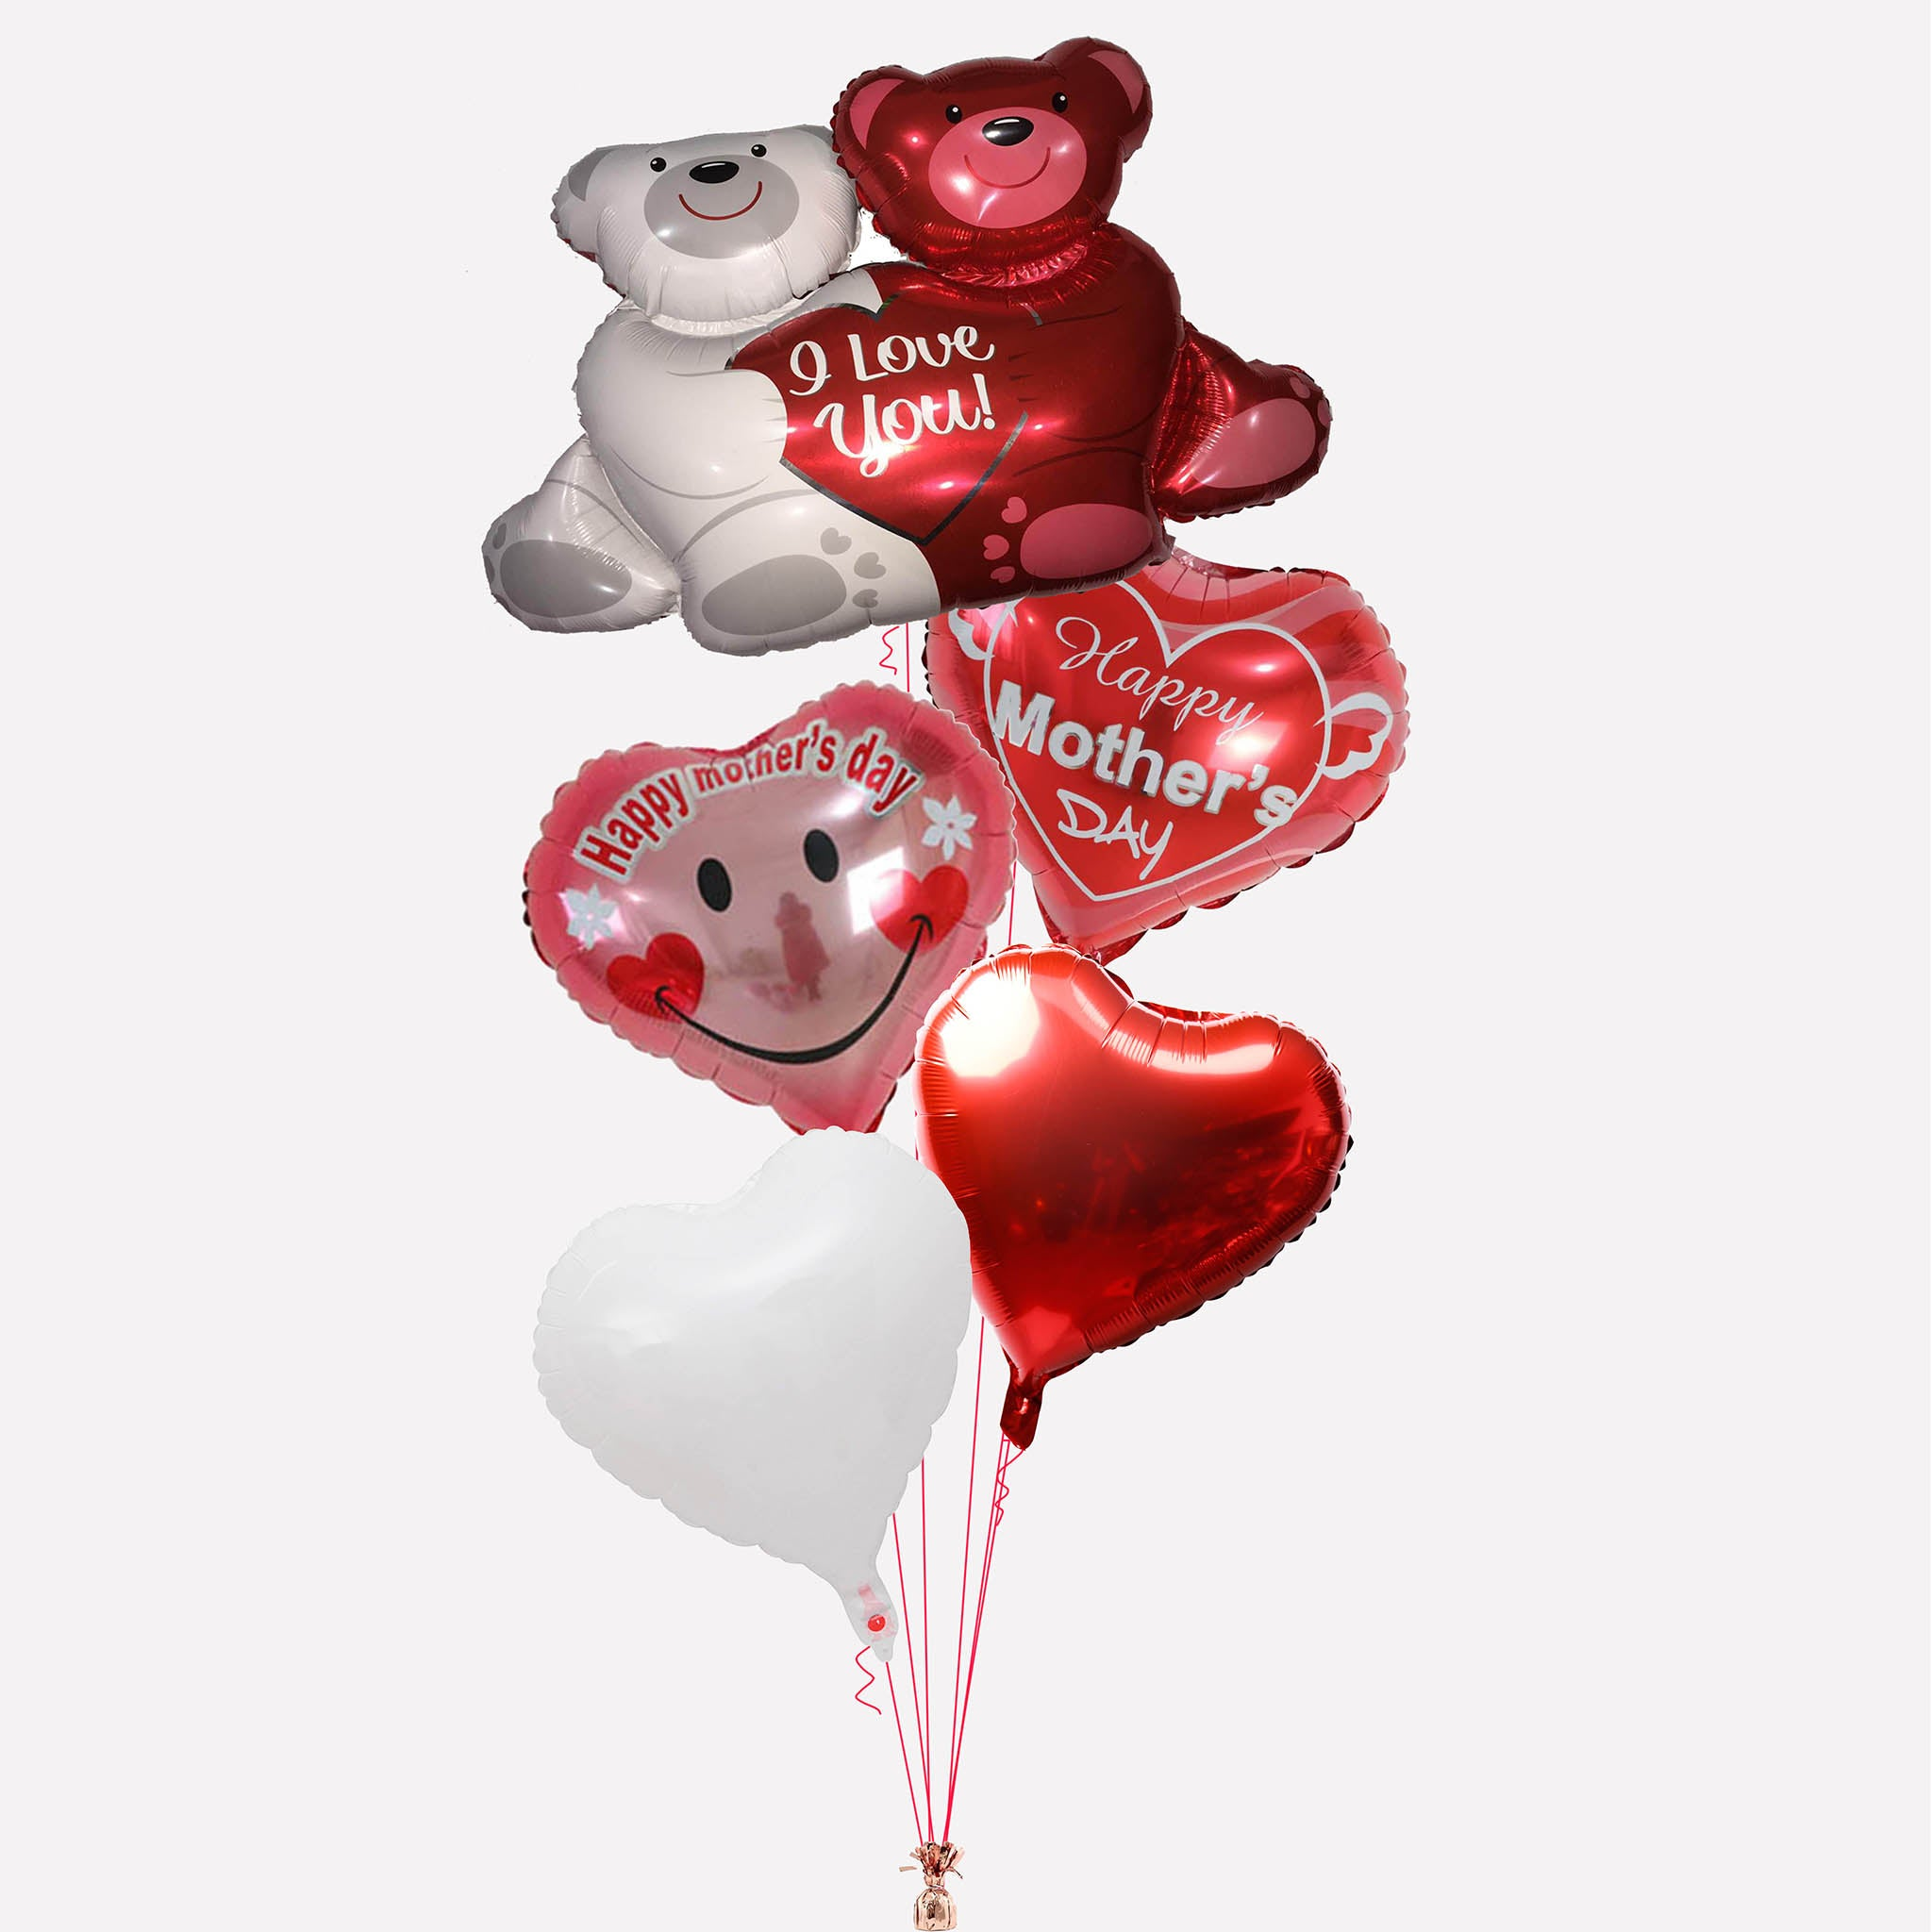 Mother's Day balloons bouquet delivery in Dubai